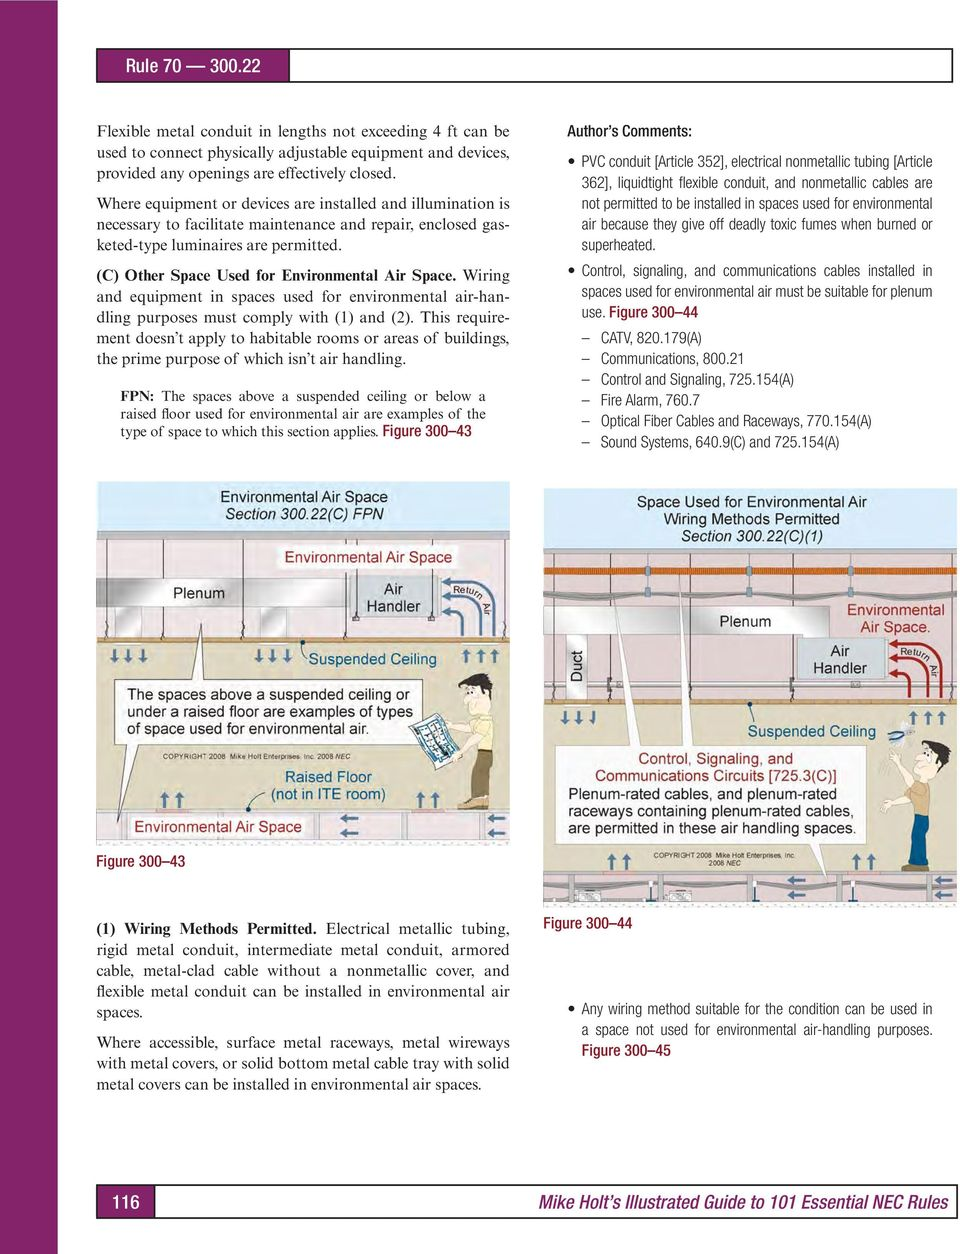 Introduction To Chapter 3 Wiring Methods And Materials Pdf Enclosure C Other Space Used For Environmental Air Equipment In Spaces